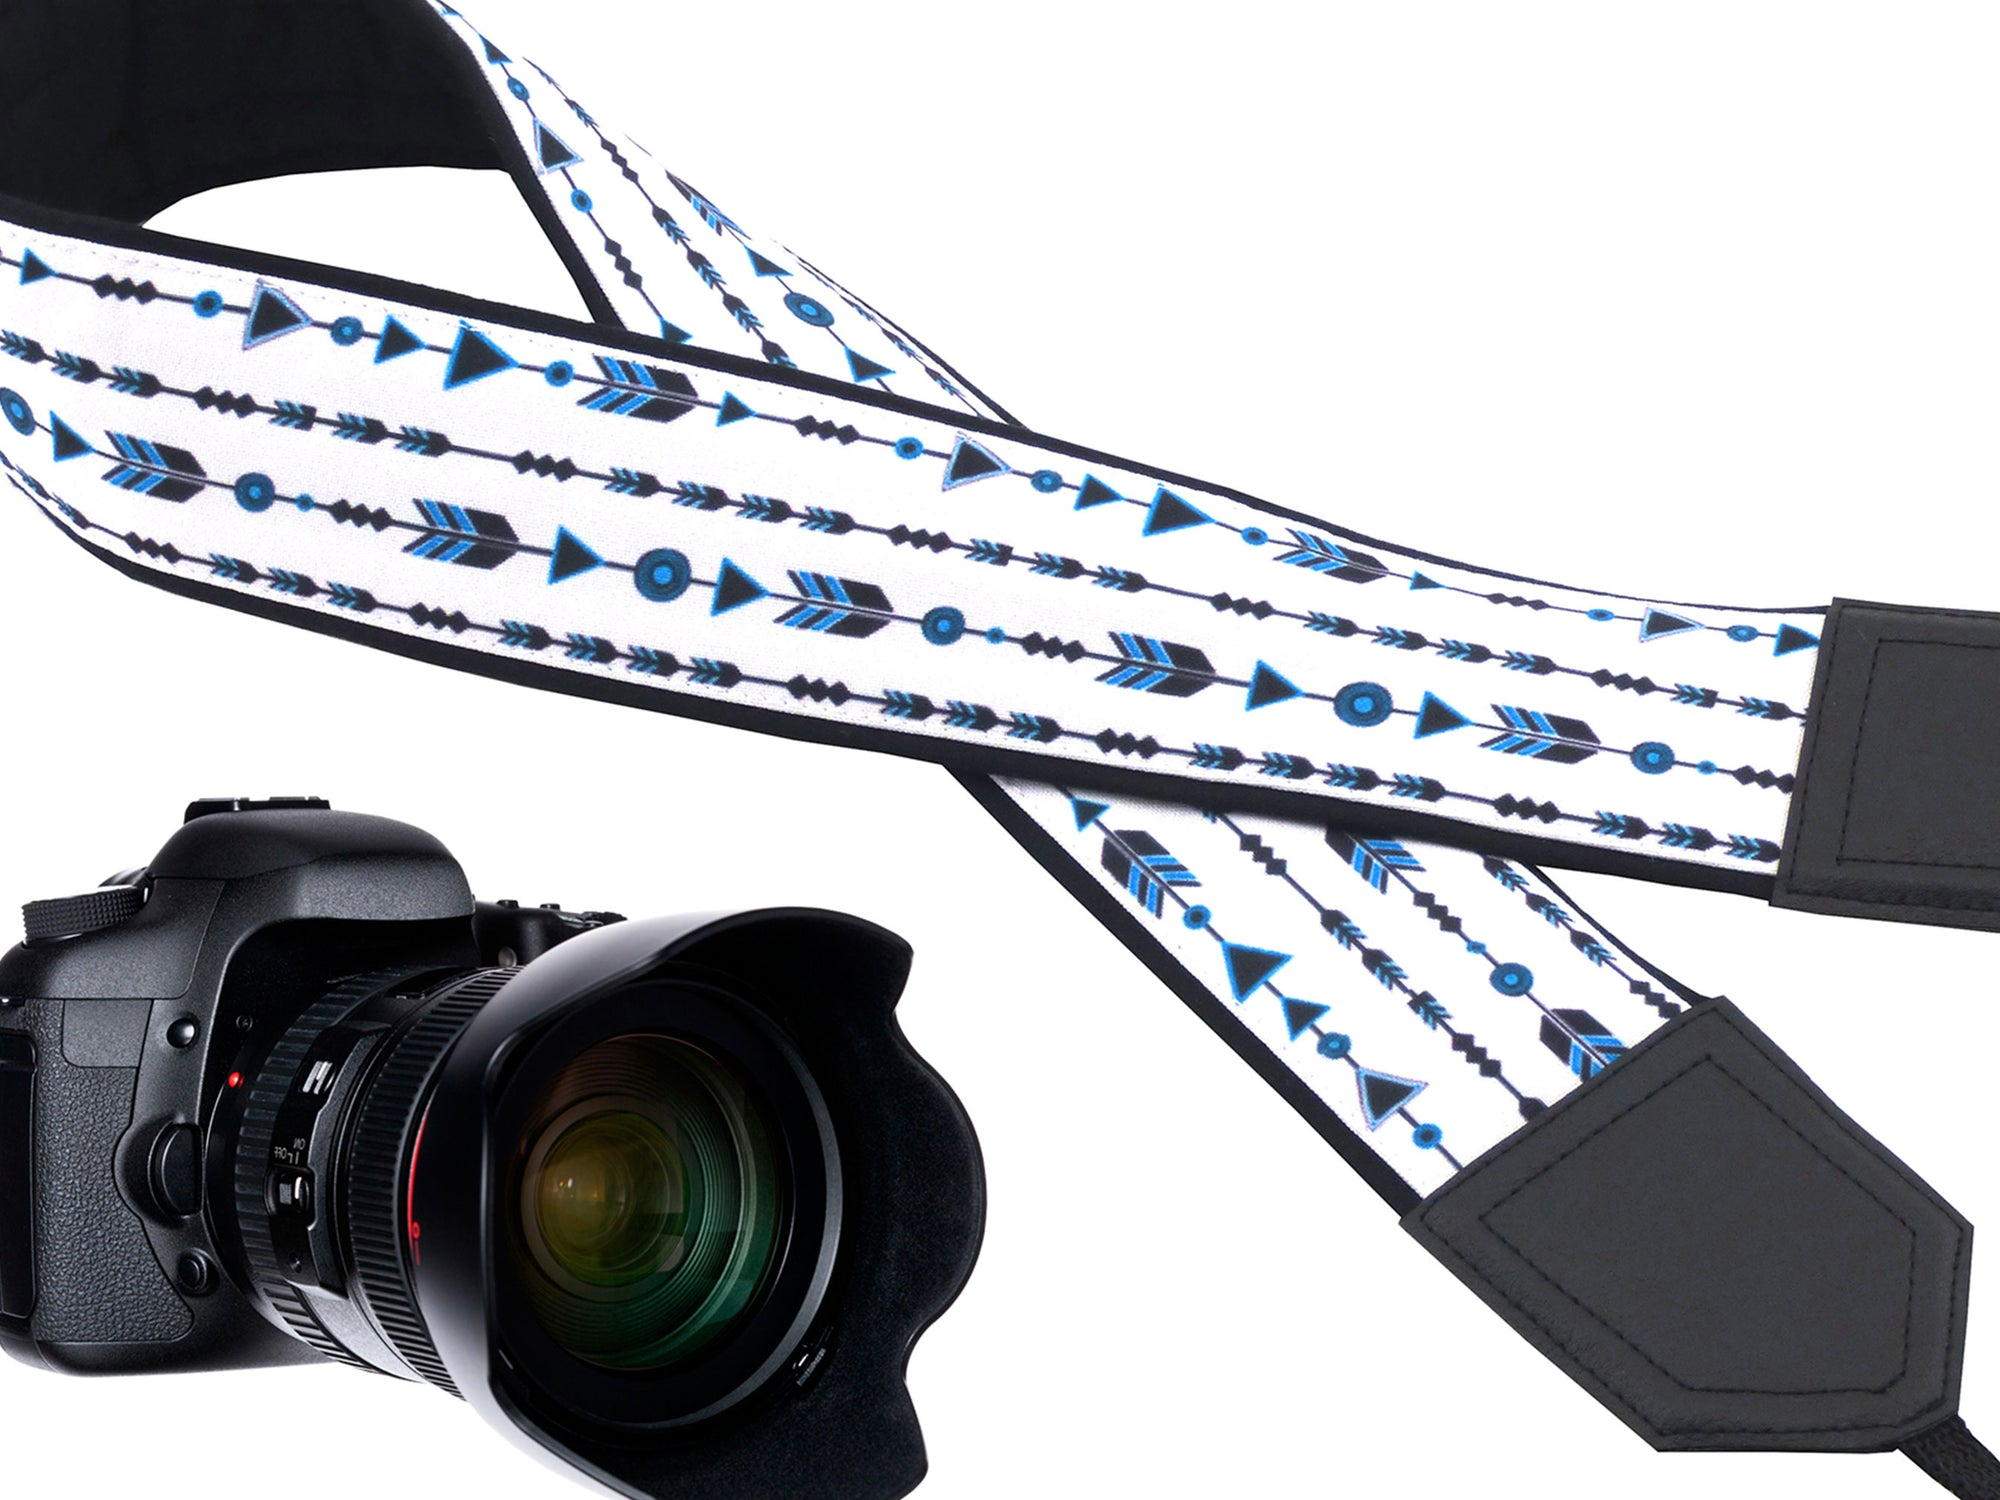 Arrow Design camera strap. Comfortable and secure camera strap. Best gift for travelers by InTePro